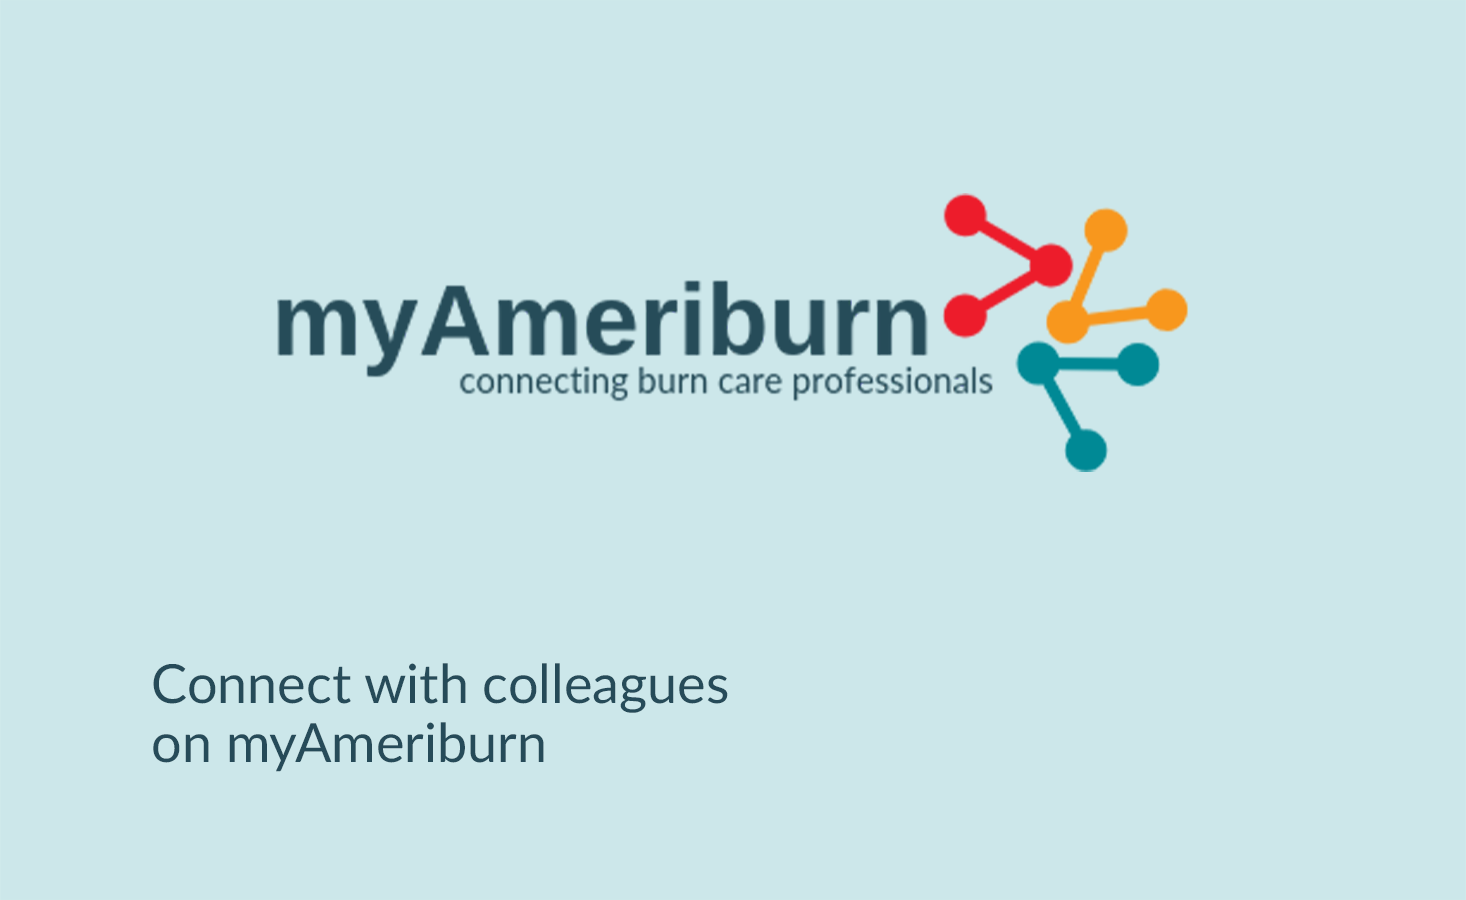 myAmeriburn: Connecting burn care professionals